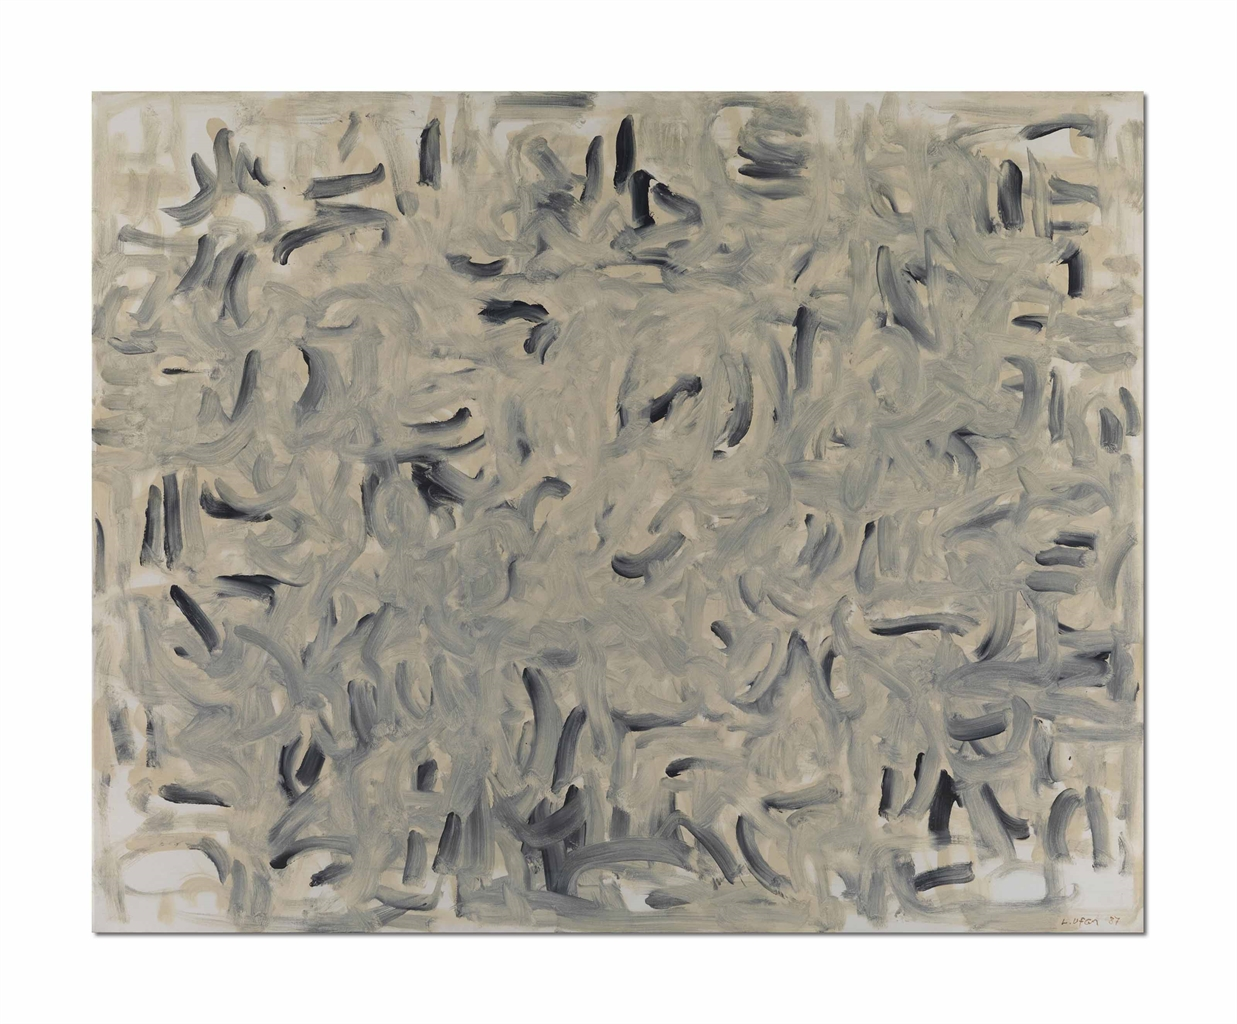 Lee Ufan-With Winds-1987